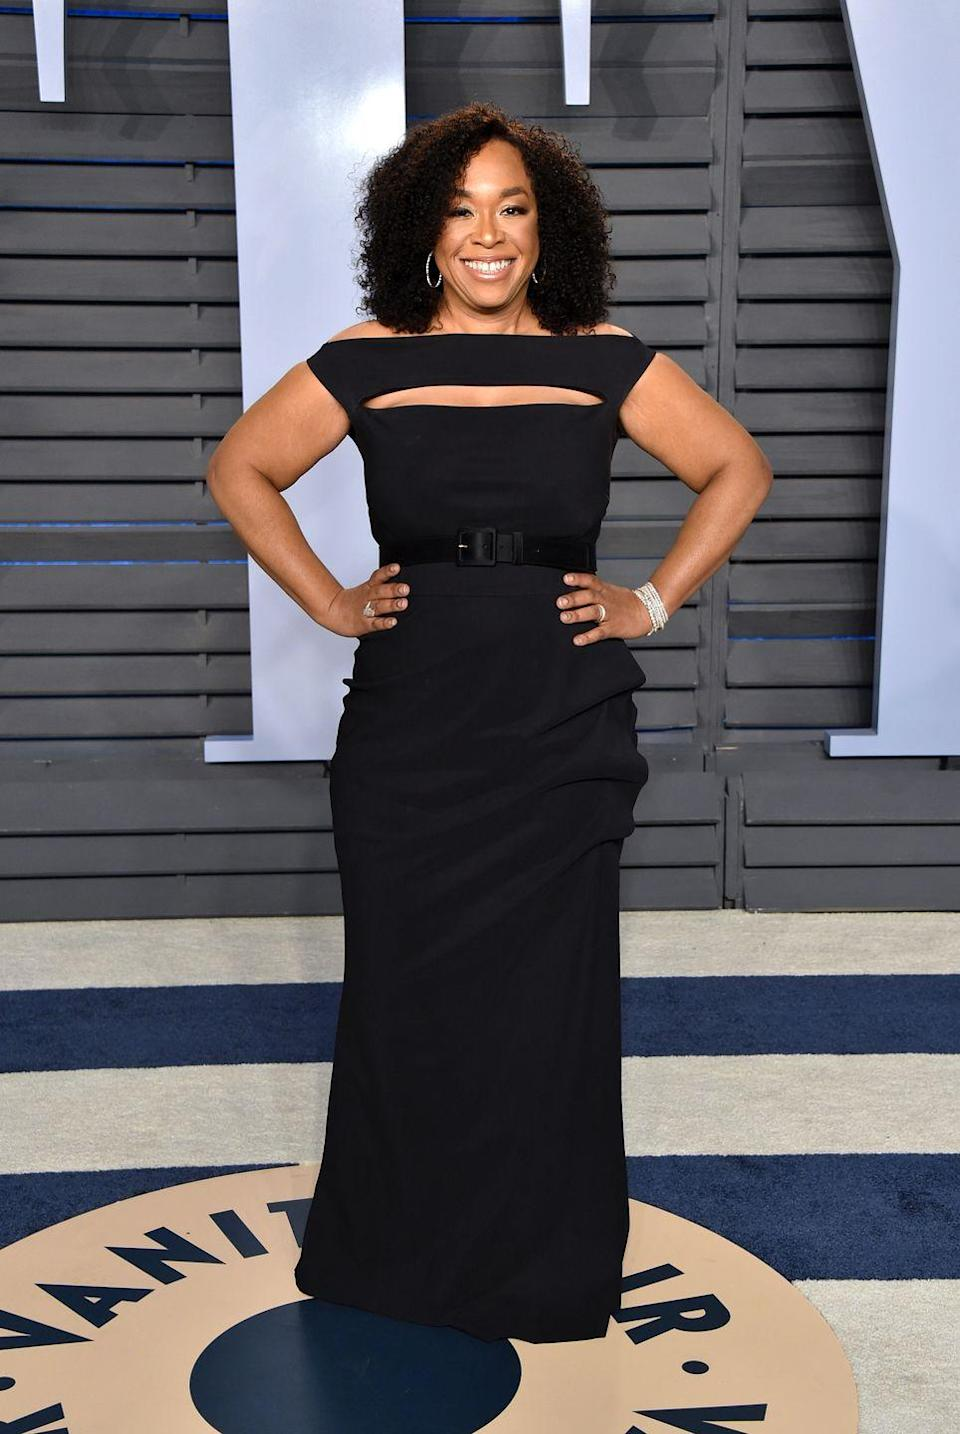 "<p><strong>Claim to fame: </strong>Producer, screenwriter, author</p><p><strong>Why she's extraordinary: </strong>At the helm of beloved shows like <em>Grey's Anatomy, </em><em>Scandal</em>, and <em>How to Get Away With Murder</em>, <a href=""https://www.oprahmag.com/entertainment/books/a25126742/shonda-rhimes-review-michelle-obama-memoir-becoming/"" rel=""nofollow noopener"" target=""_blank"" data-ylk=""slk:Rhimes's"" class=""link rapid-noclick-resp"">Rhimes's</a> production company, Shondaland owns ABC's Thursday night slots. With <em>Grey's</em>, she's the first Black woman to create and produce a top 10 network series. Most recently, Rhimes signed a <a href=""https://www.forbes.com/sites/tonifitzgerald/2018/07/20/inside-shonda-rhimes-150-million-netflix-deal-and-how-it-could-change-tv/#7bae31c023cd"" rel=""nofollow noopener"" target=""_blank"" data-ylk=""slk:multi-year $150 million deal"" class=""link rapid-noclick-resp"">multi-year $150 million deal </a>with Netflix<em>. </em>She's now <a href=""https://www.nytimes.com/2018/07/20/business/media/shonda-rhimes-netflix-series.html"" rel=""nofollow noopener"" target=""_blank"" data-ylk=""slk:developing eight new series"" class=""link rapid-noclick-resp"">developing eight new series</a> for the streaming giant, with the first being the <a href=""https://www.oprahmag.com/entertainment/tv-movies/a34955650/bridgerton-season-2-release-date-cast-news/"" rel=""nofollow noopener"" target=""_blank"" data-ylk=""slk:breakout romantic period drama Bridgerton."" class=""link rapid-noclick-resp"">breakout romantic period drama <em>Bridgerton.</em></a></p>"